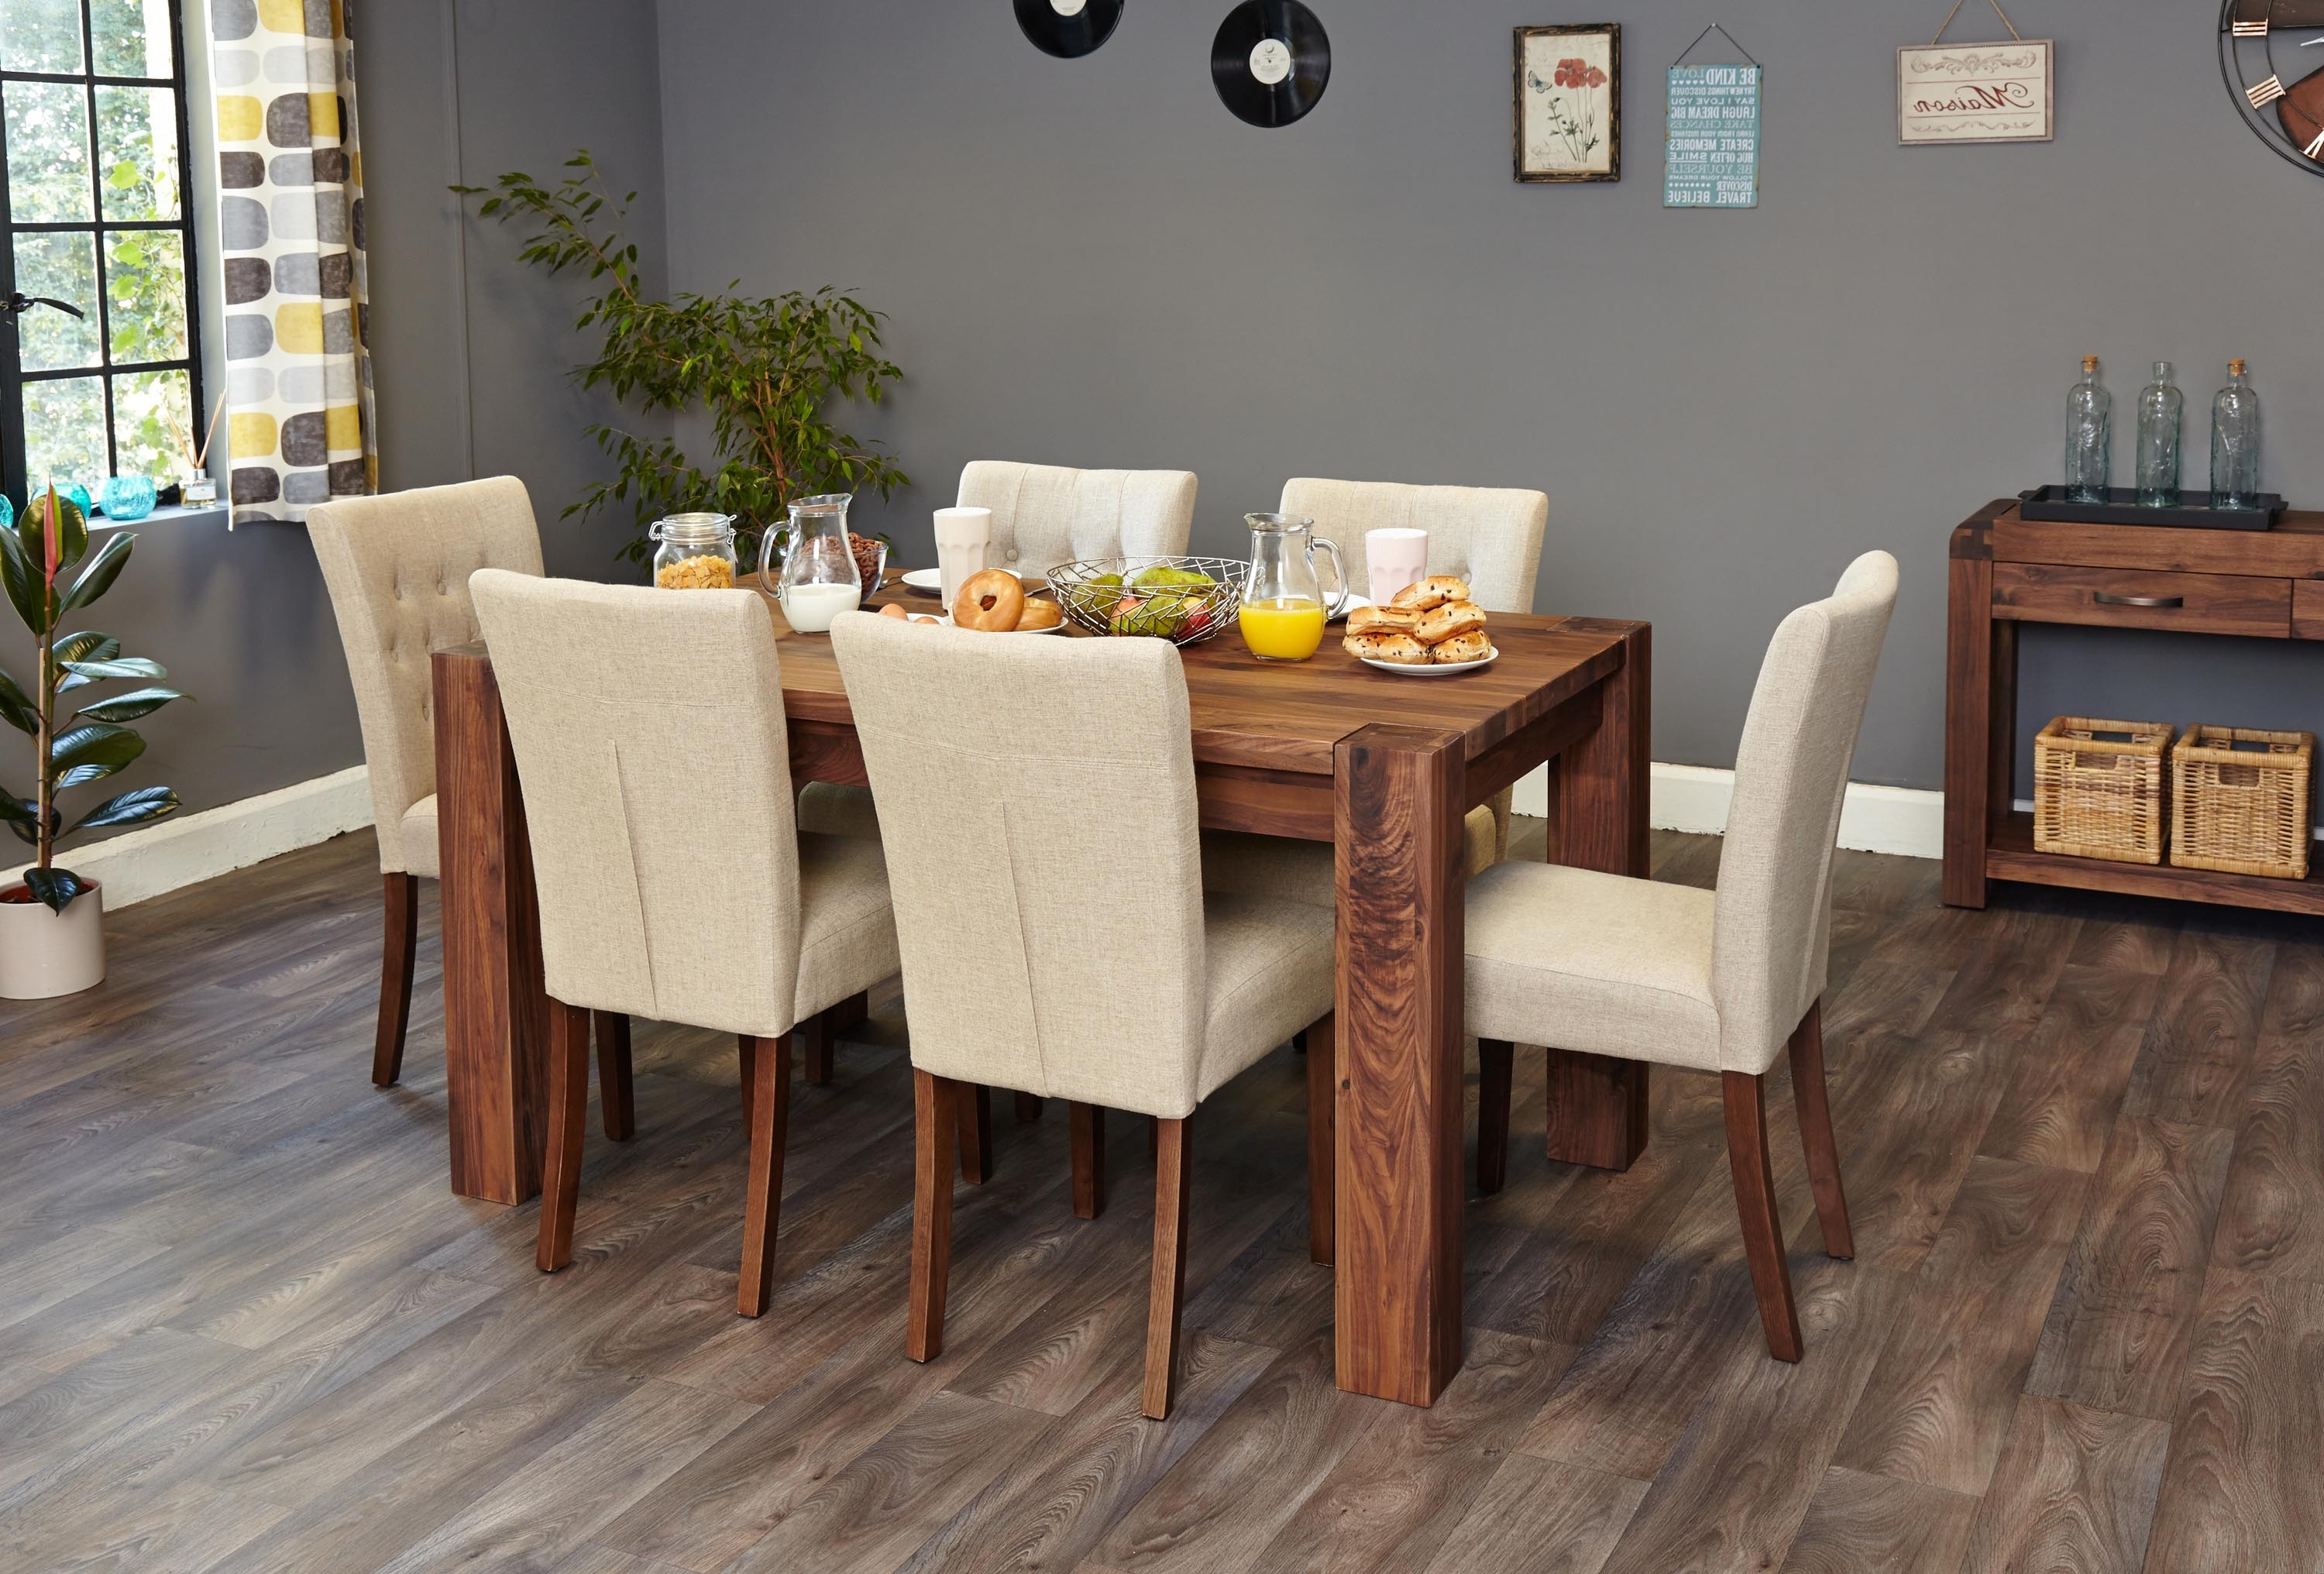 Mayan Walnut 150Cm Dining Table (4 To 6 Seater) (Cdr04B) Within Best And Newest Walnut Dining Tables And 6 Chairs (View 13 of 25)